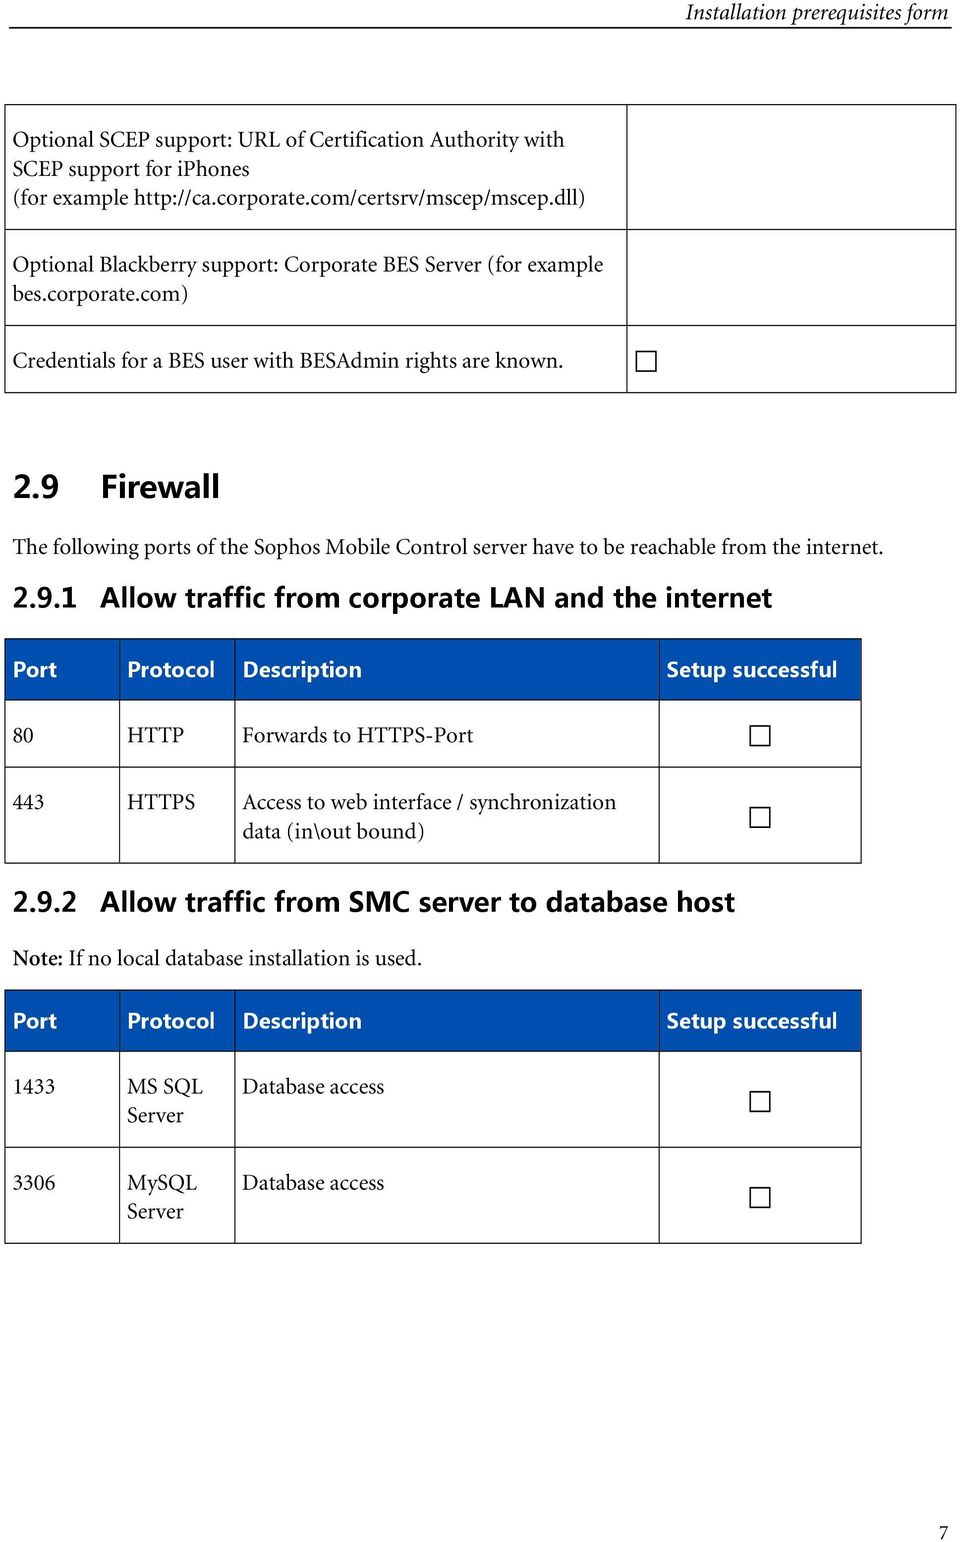 9 Firewall The following ports of the Sophos Mobile Control server have to be reachable from the internet. 2.9.1 Allow traffic from corporate LAN and the internet 80 HTTP Forwards to HTTPS-Port 443 HTTPS Access to web interface / synchronization data (in\out bound) 2.